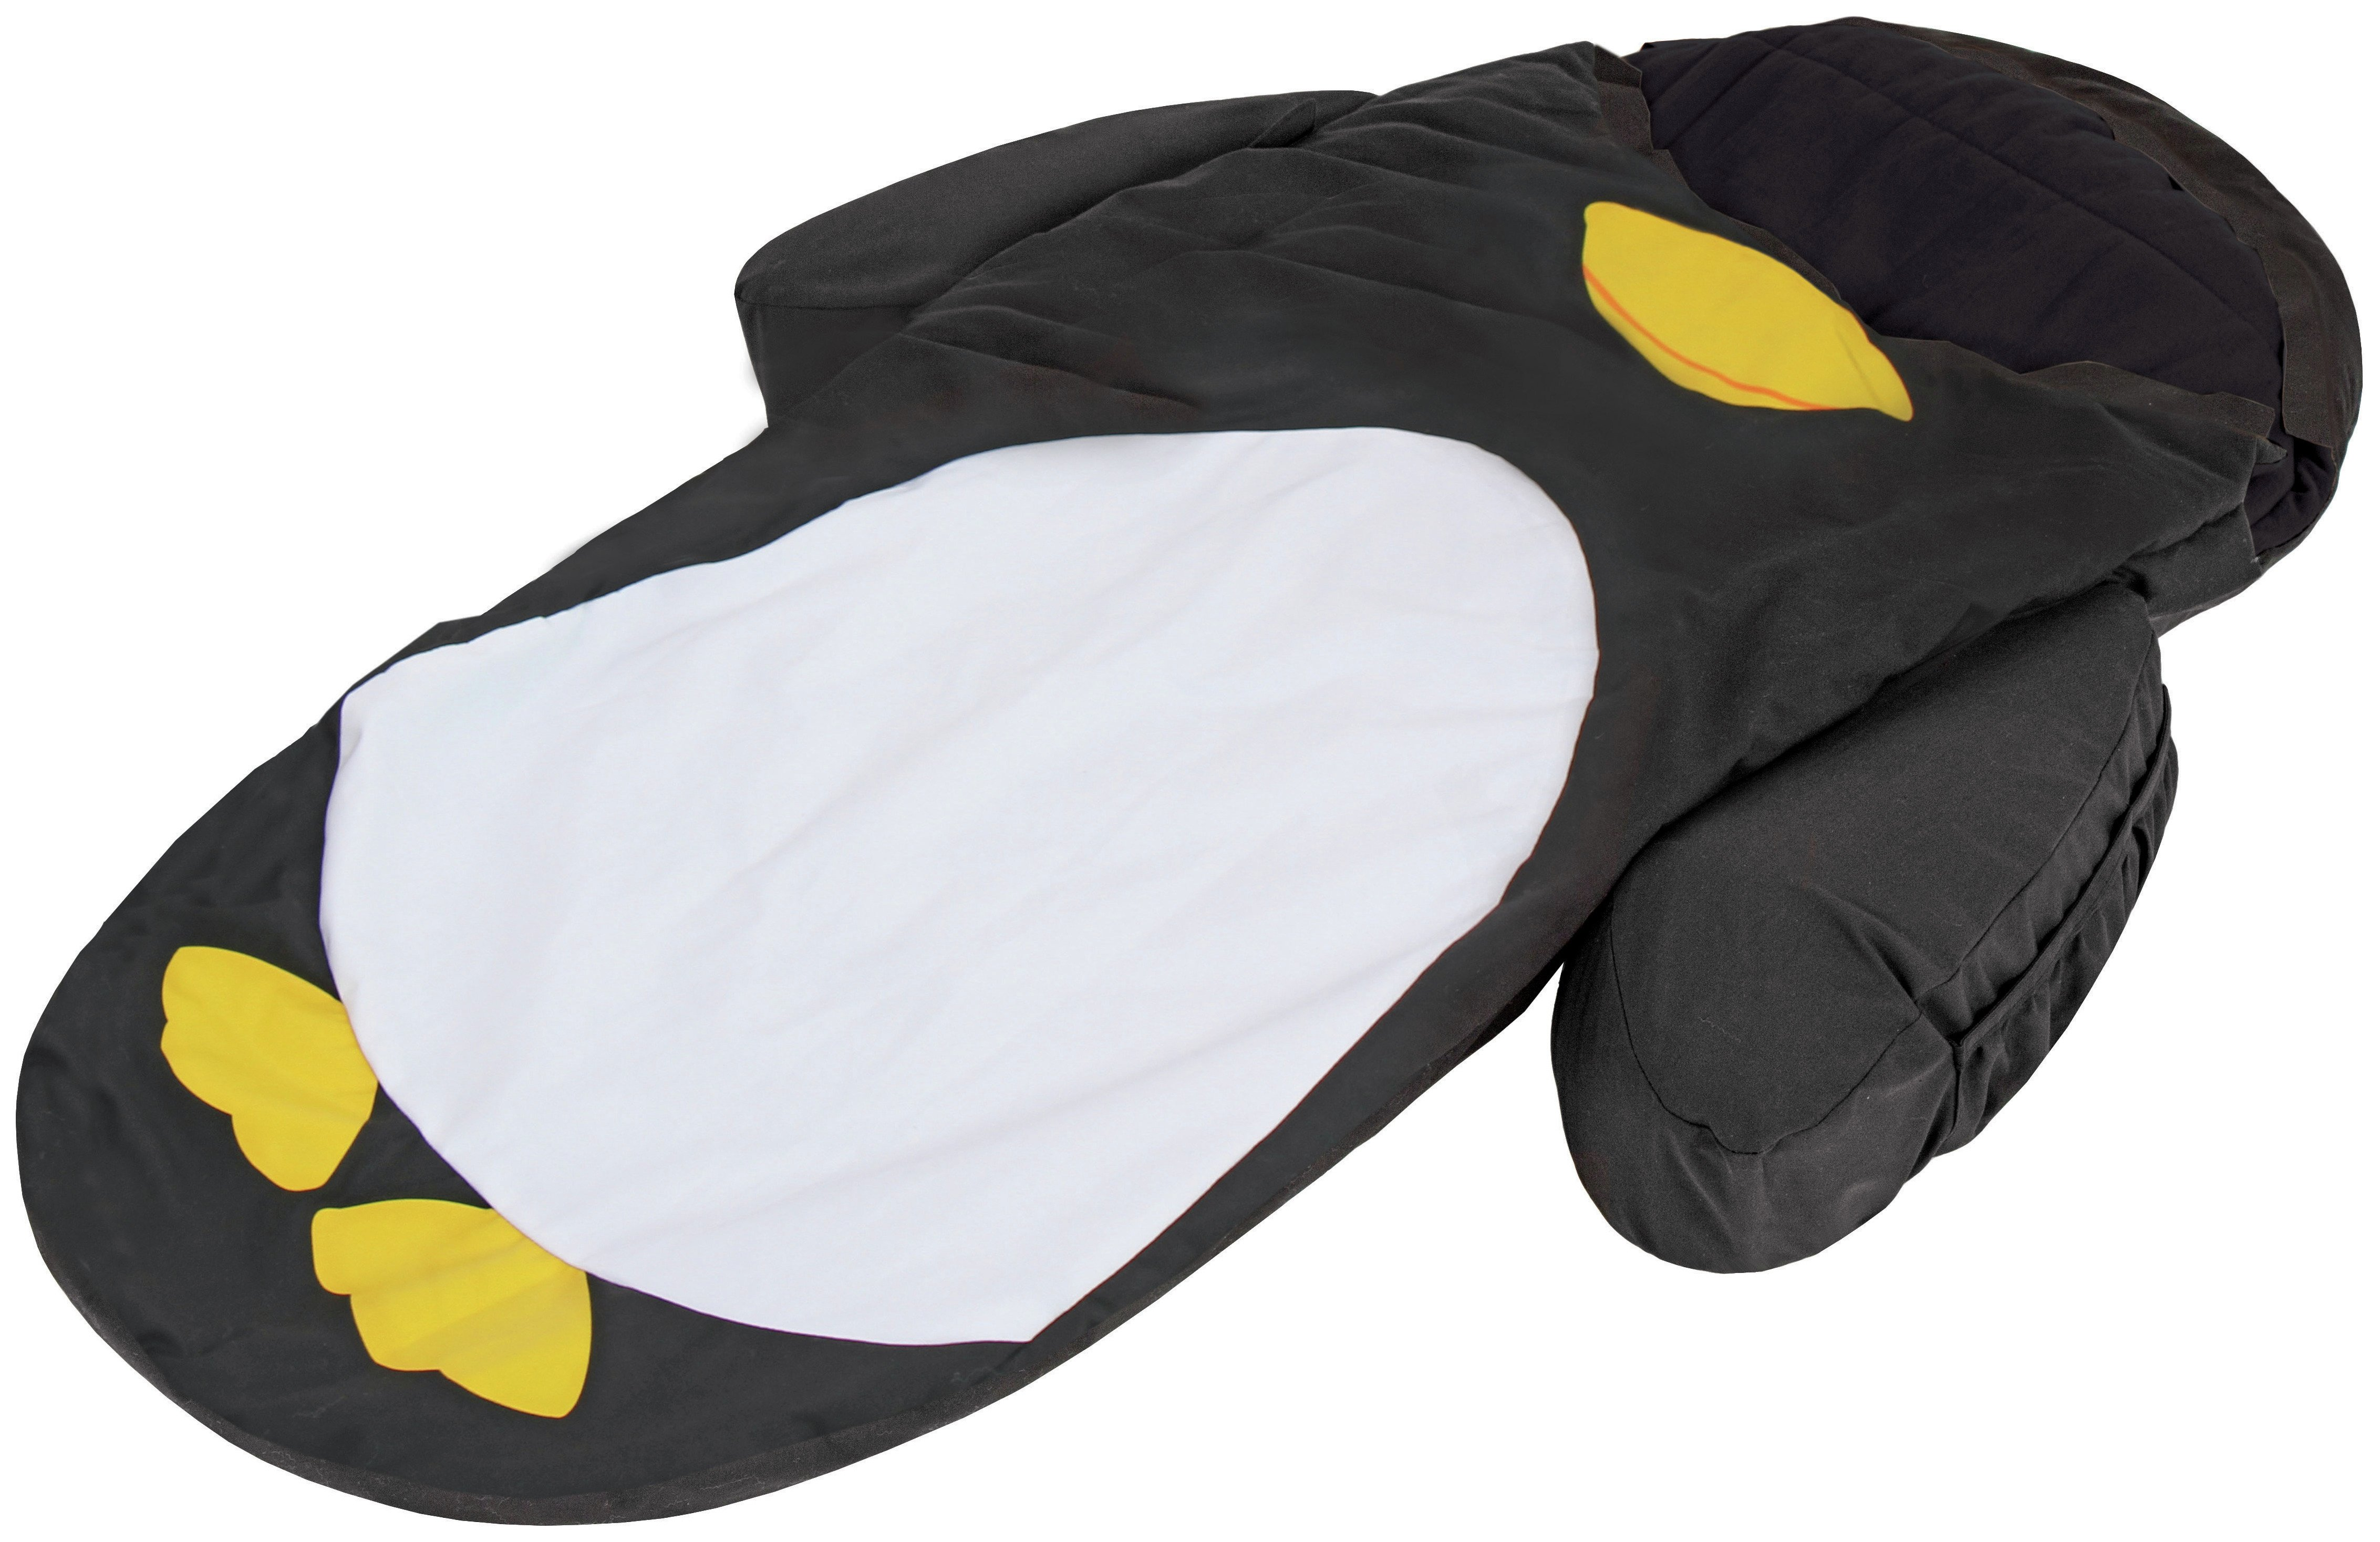 LittleLife Animal Snuggle Pod - Penguin